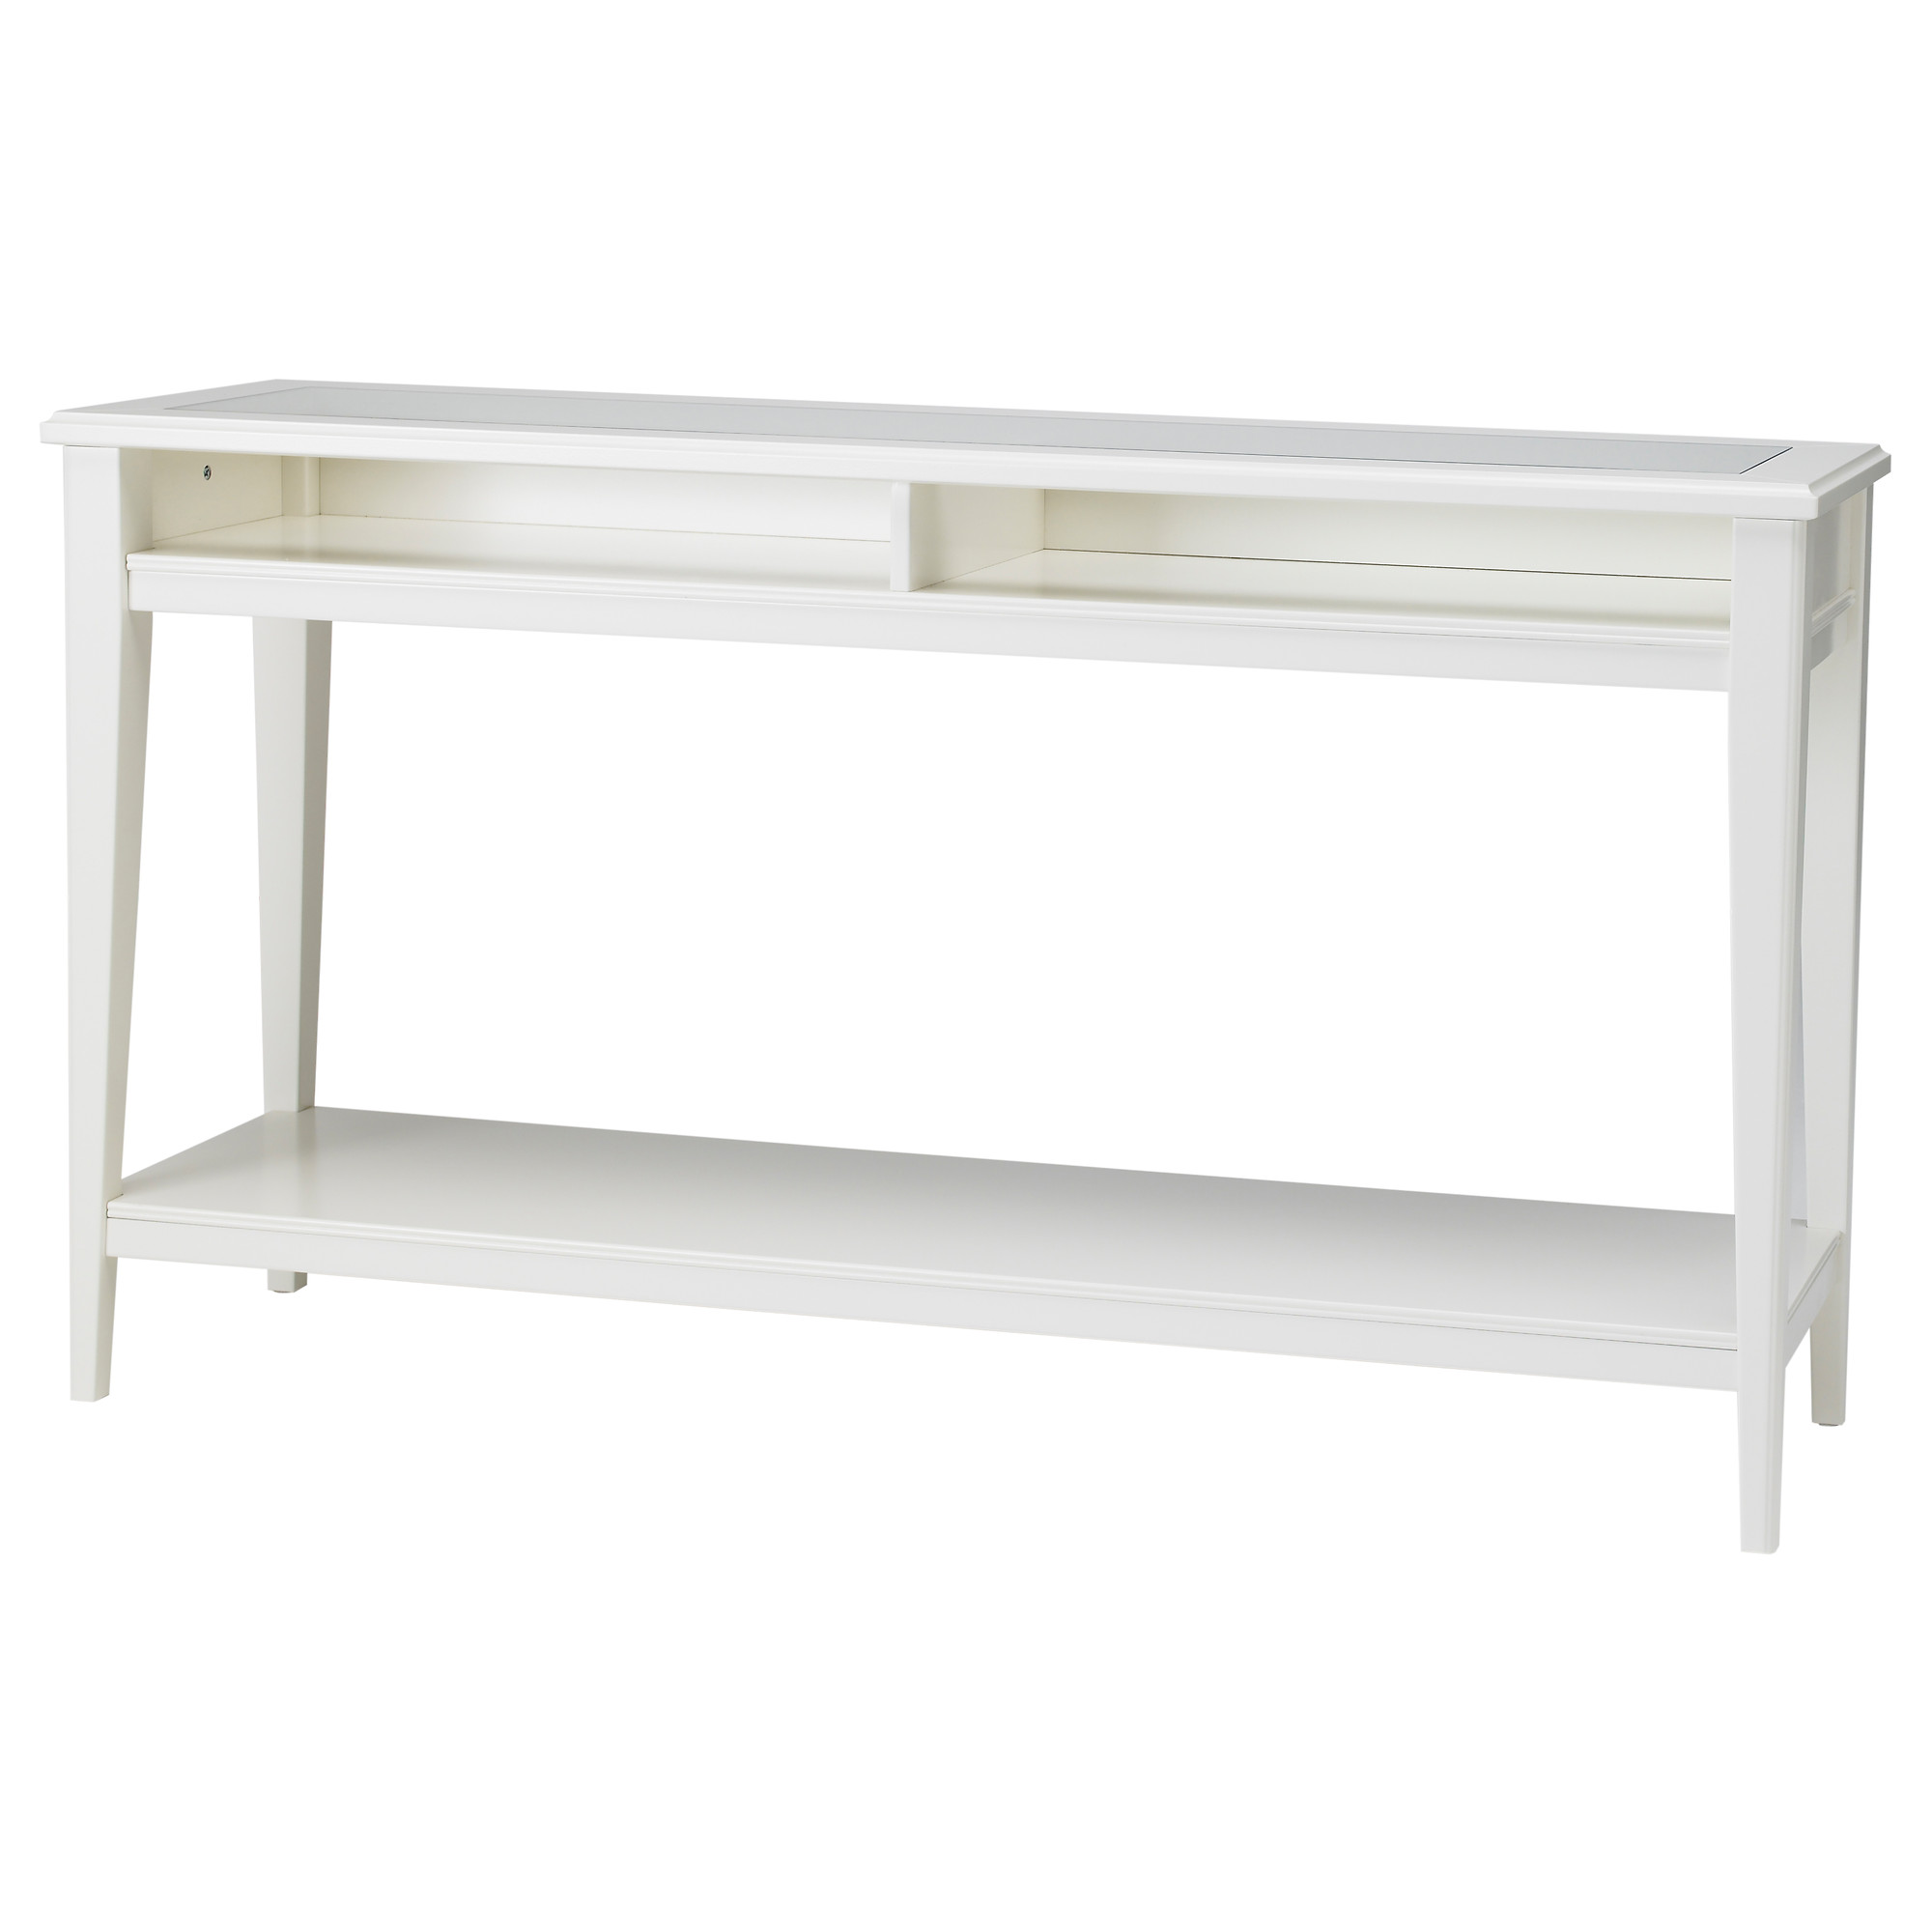 cool dazzling console tables ikea with storage beneath painted in white featuring with rack. Black Bedroom Furniture Sets. Home Design Ideas